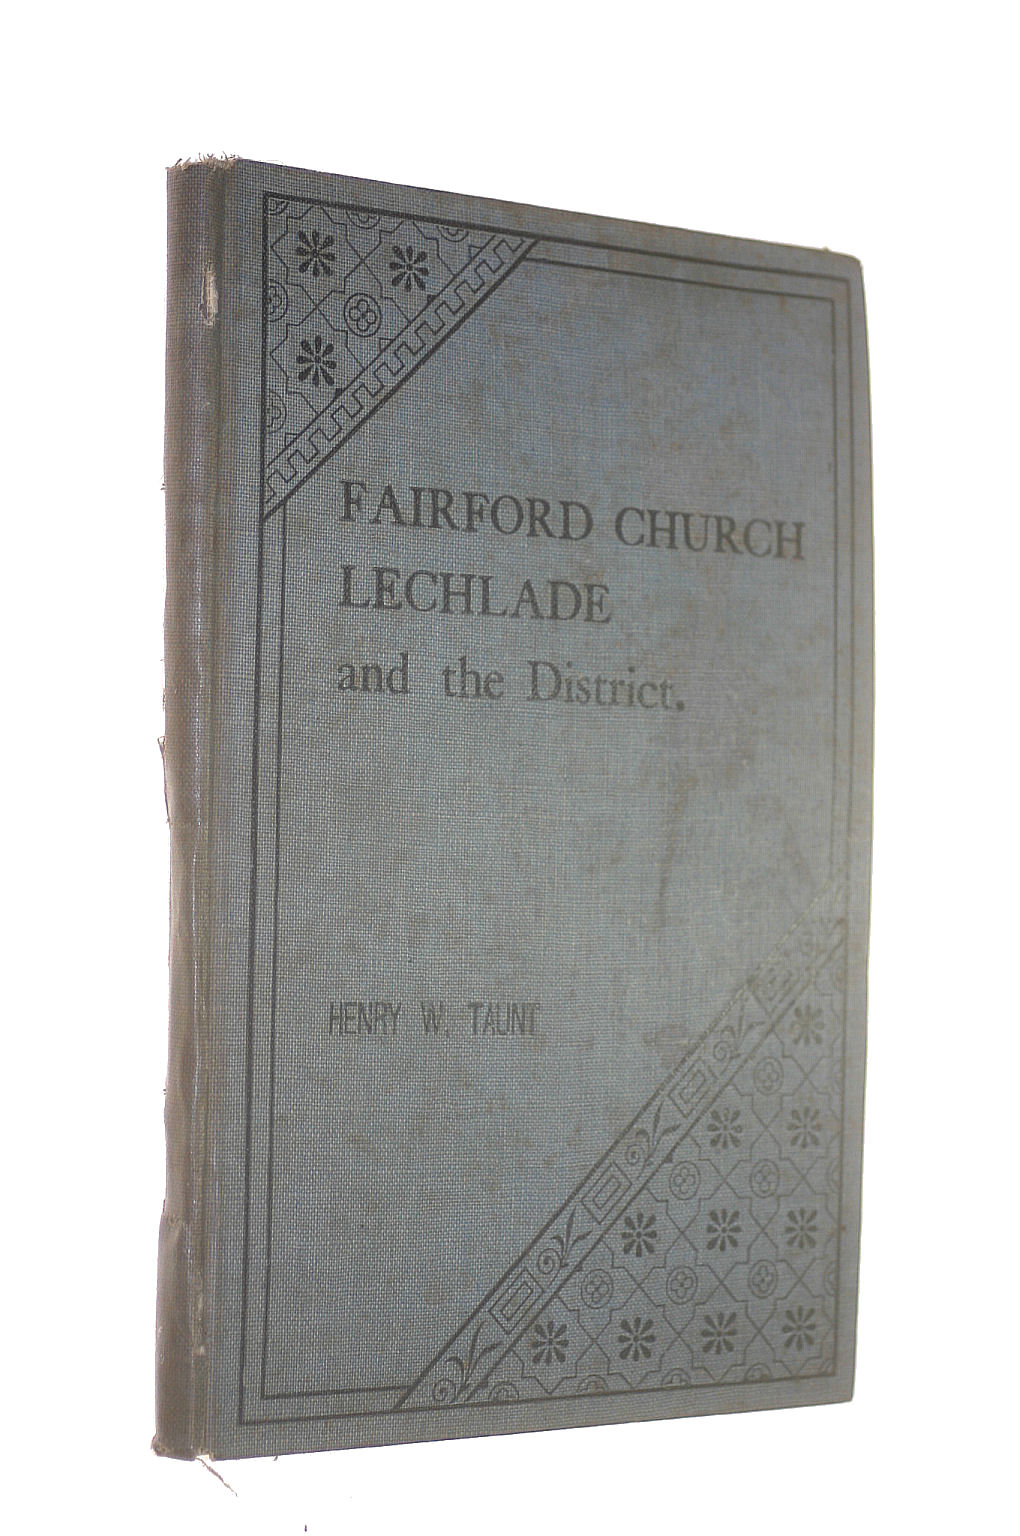 Image for Fairford church with its celebrated windows: Lechlade and the district around them